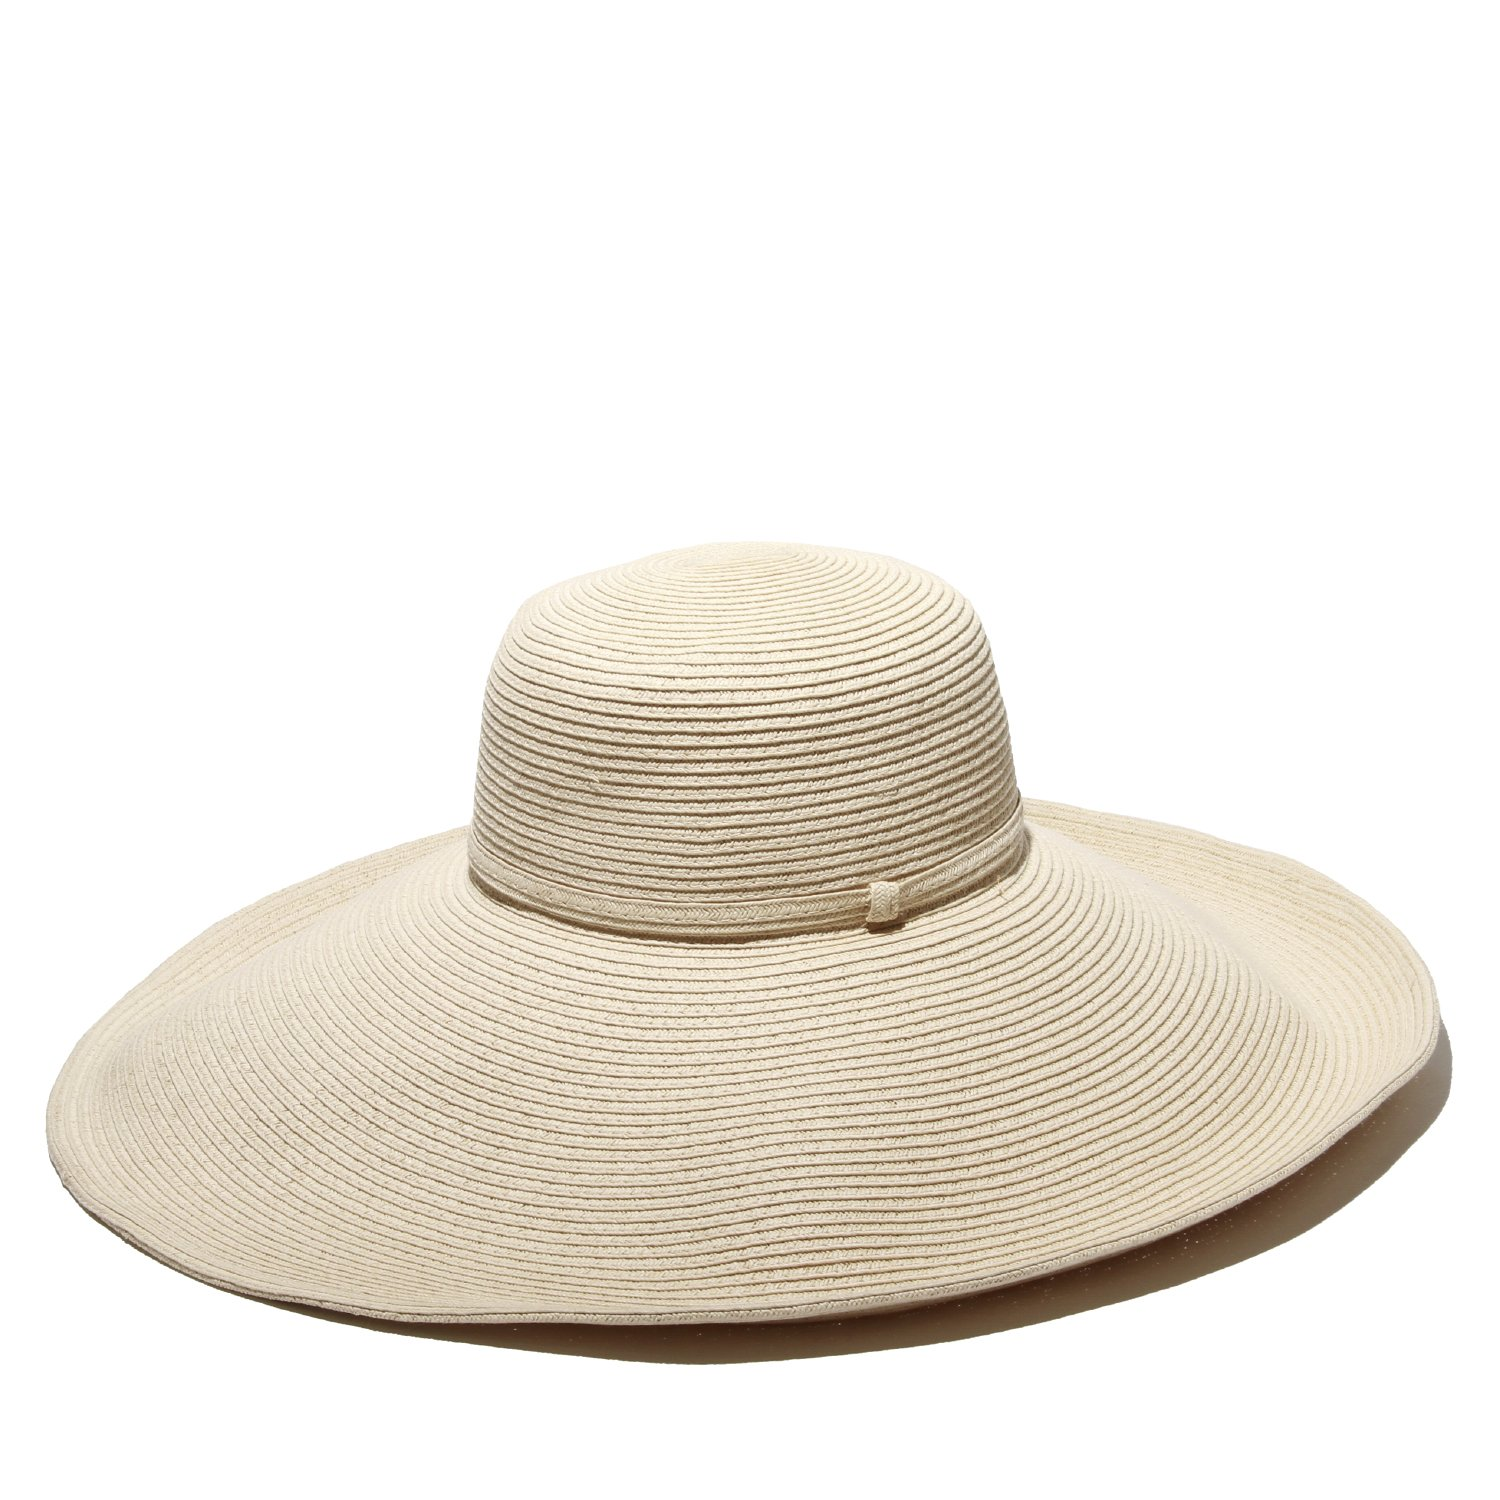 Gottex Women's Belladonna Wide Brim Packable Sun Hat, Rated UPF 50 For Max Sun Protection, Ivory, One Size